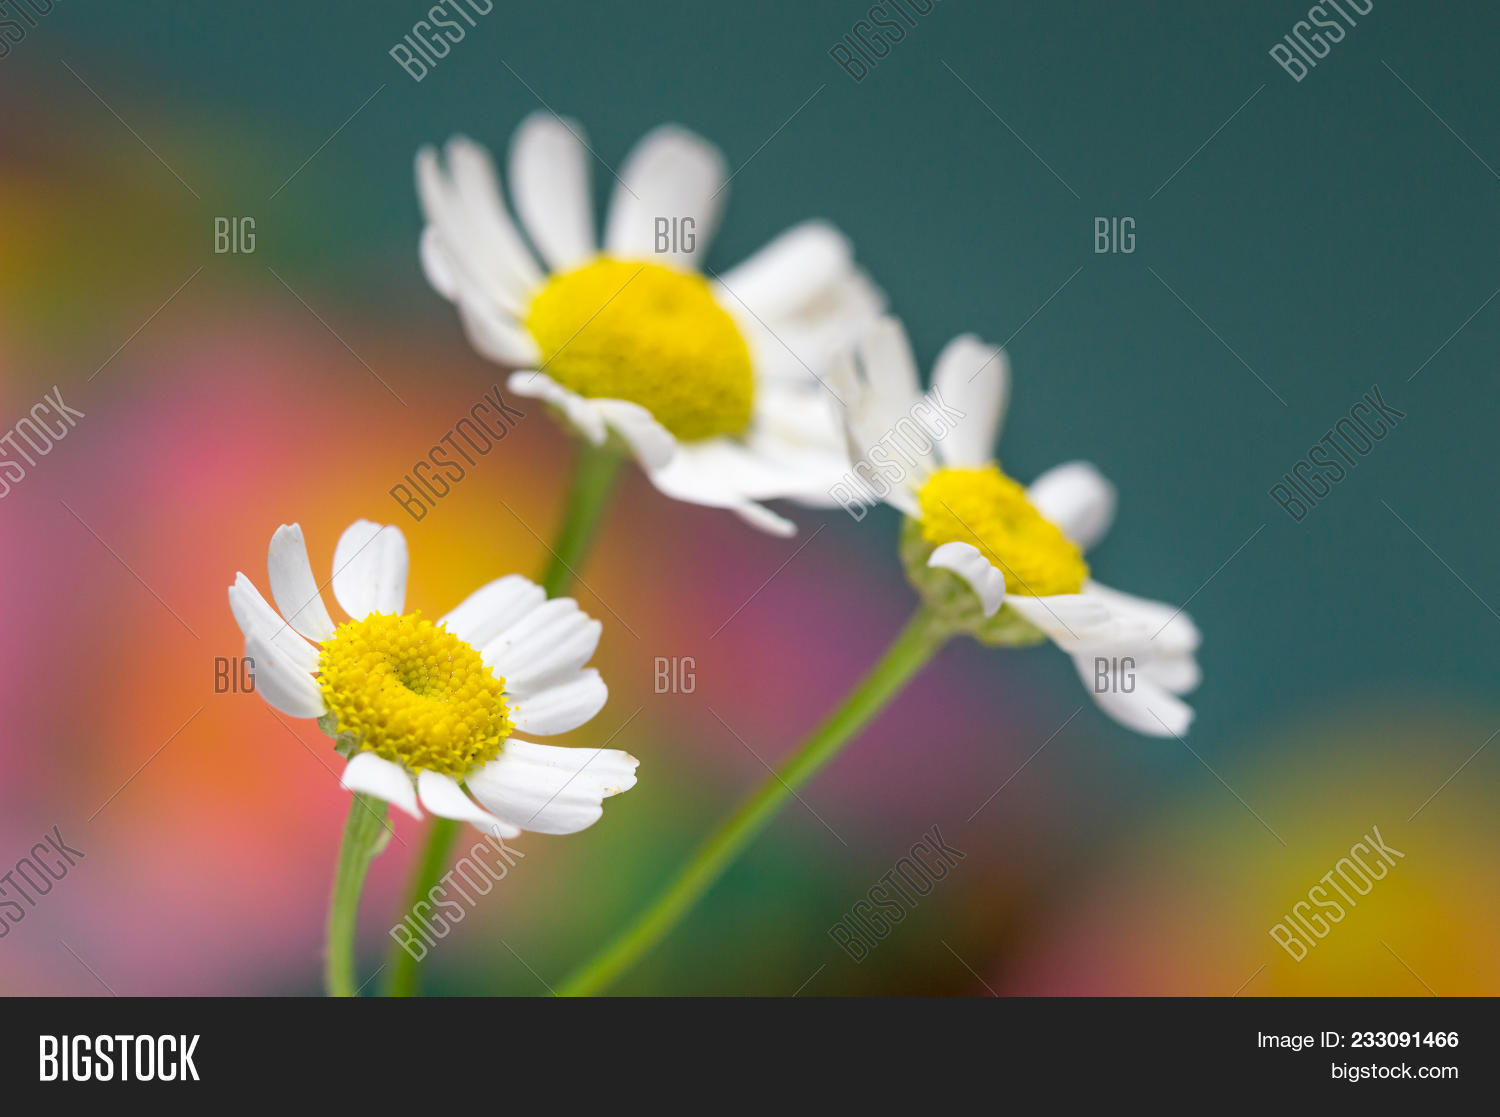 Feverfew Flowers Image Photo Free Trial Bigstock